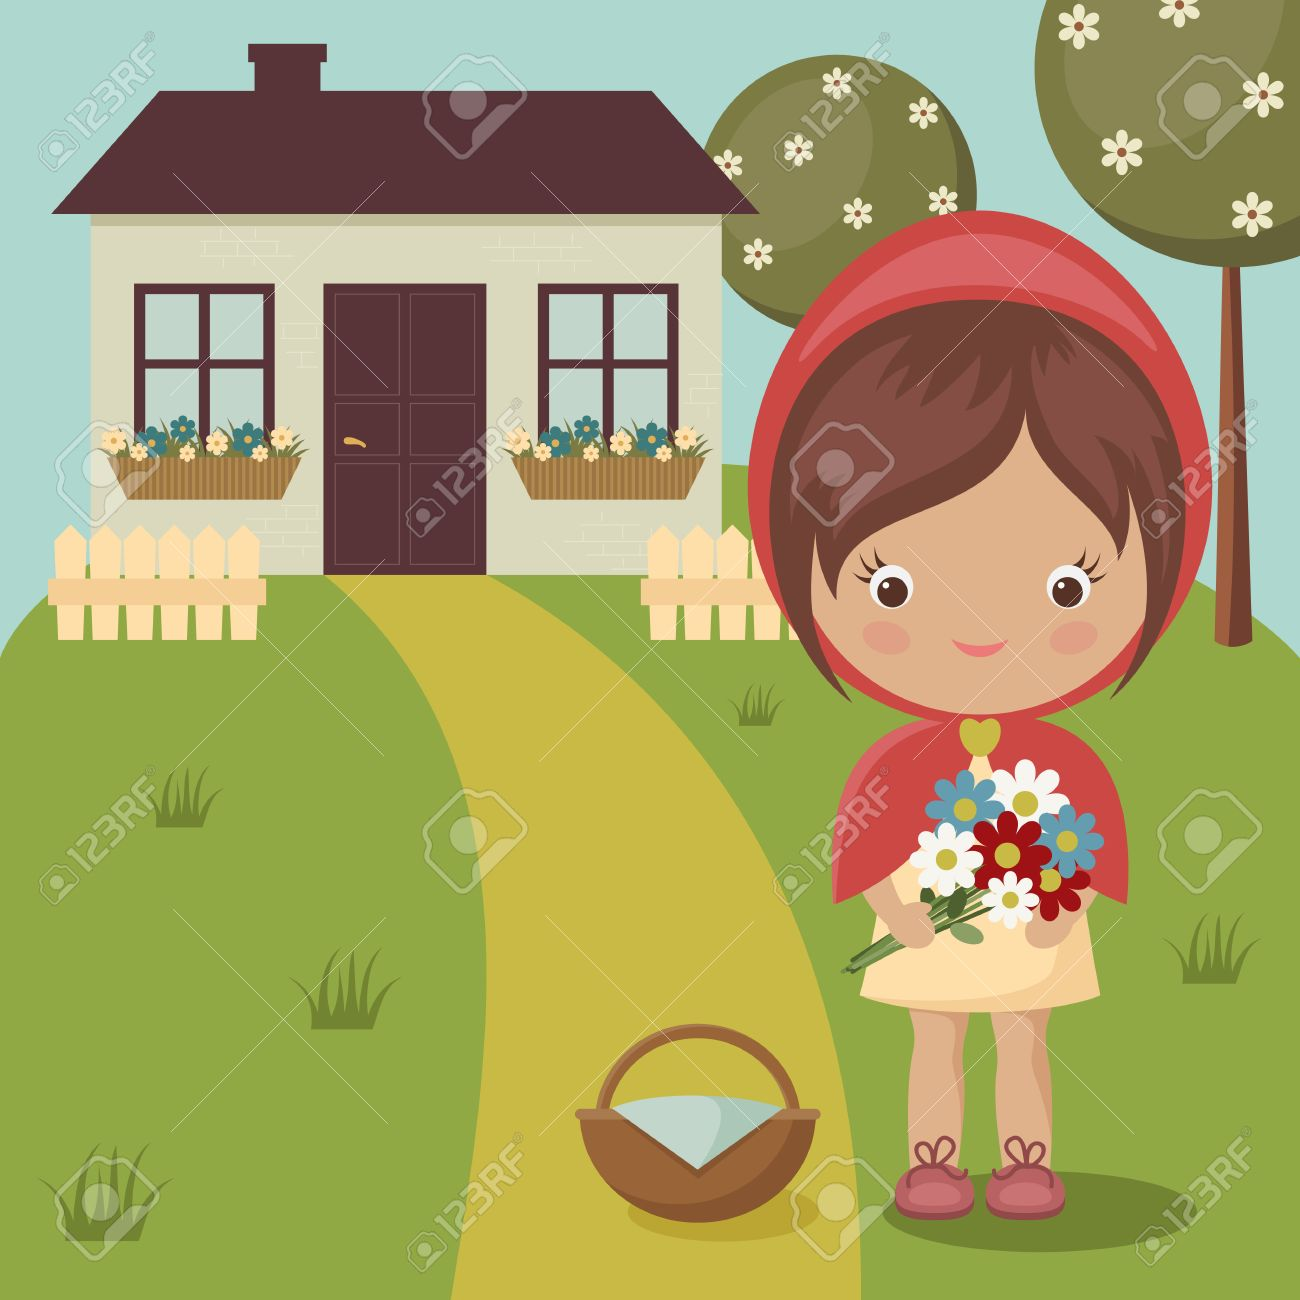 Little Red Riding Hood close to grandma's house with flowers...